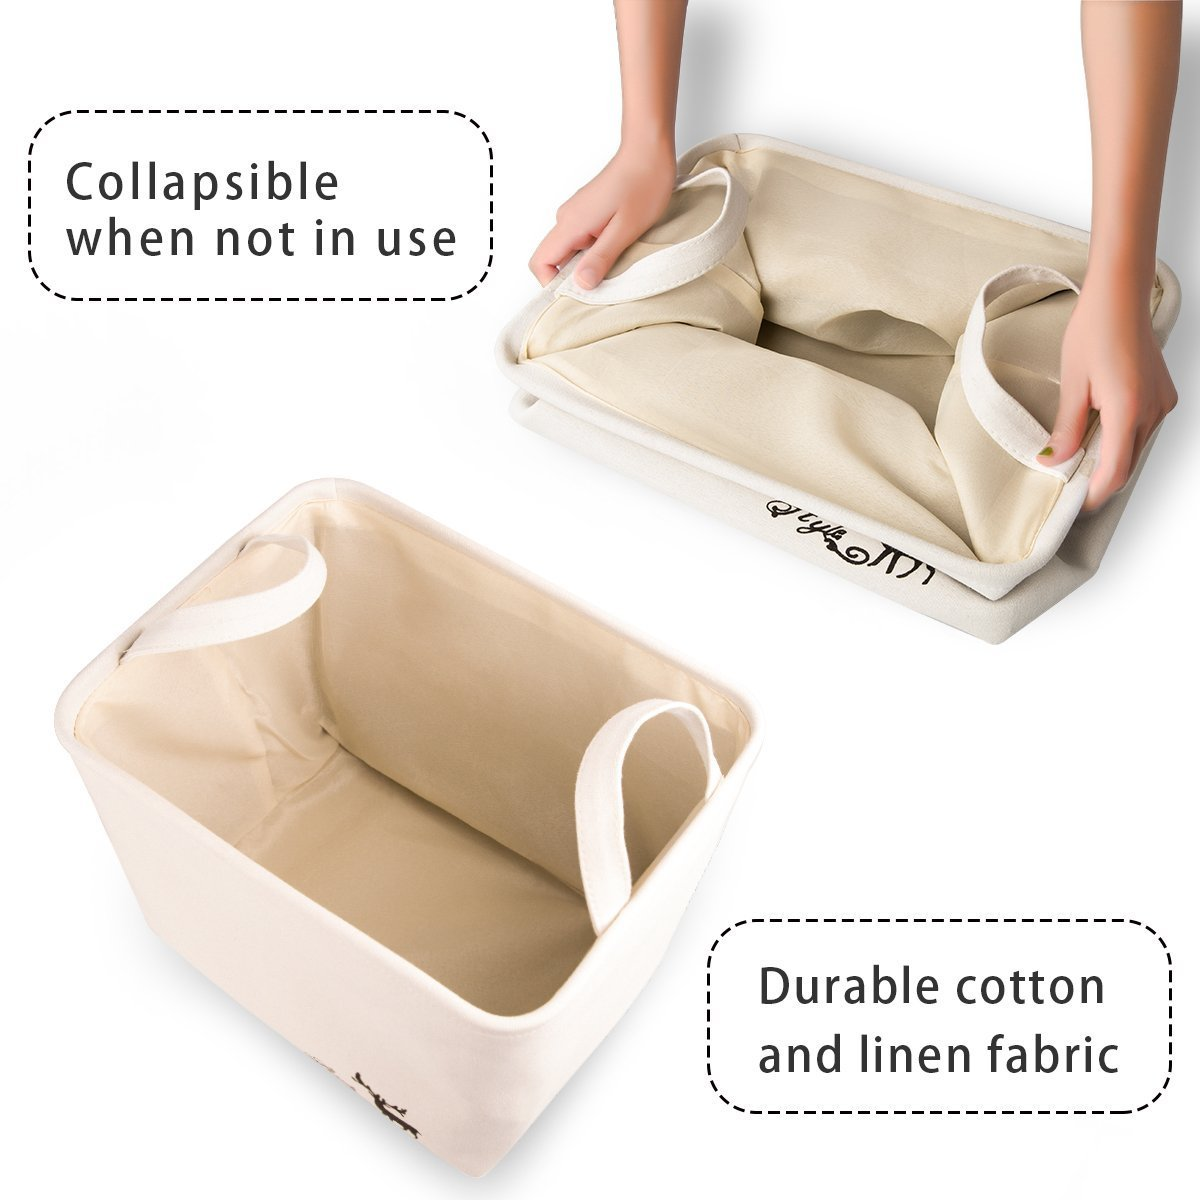 WISHPOOL Collapsible Storage Bin Baskets Foldable Canvas Fabric Storage Cube Bin Set With Handles For Home Laundry Closet (2-PACK 2) …